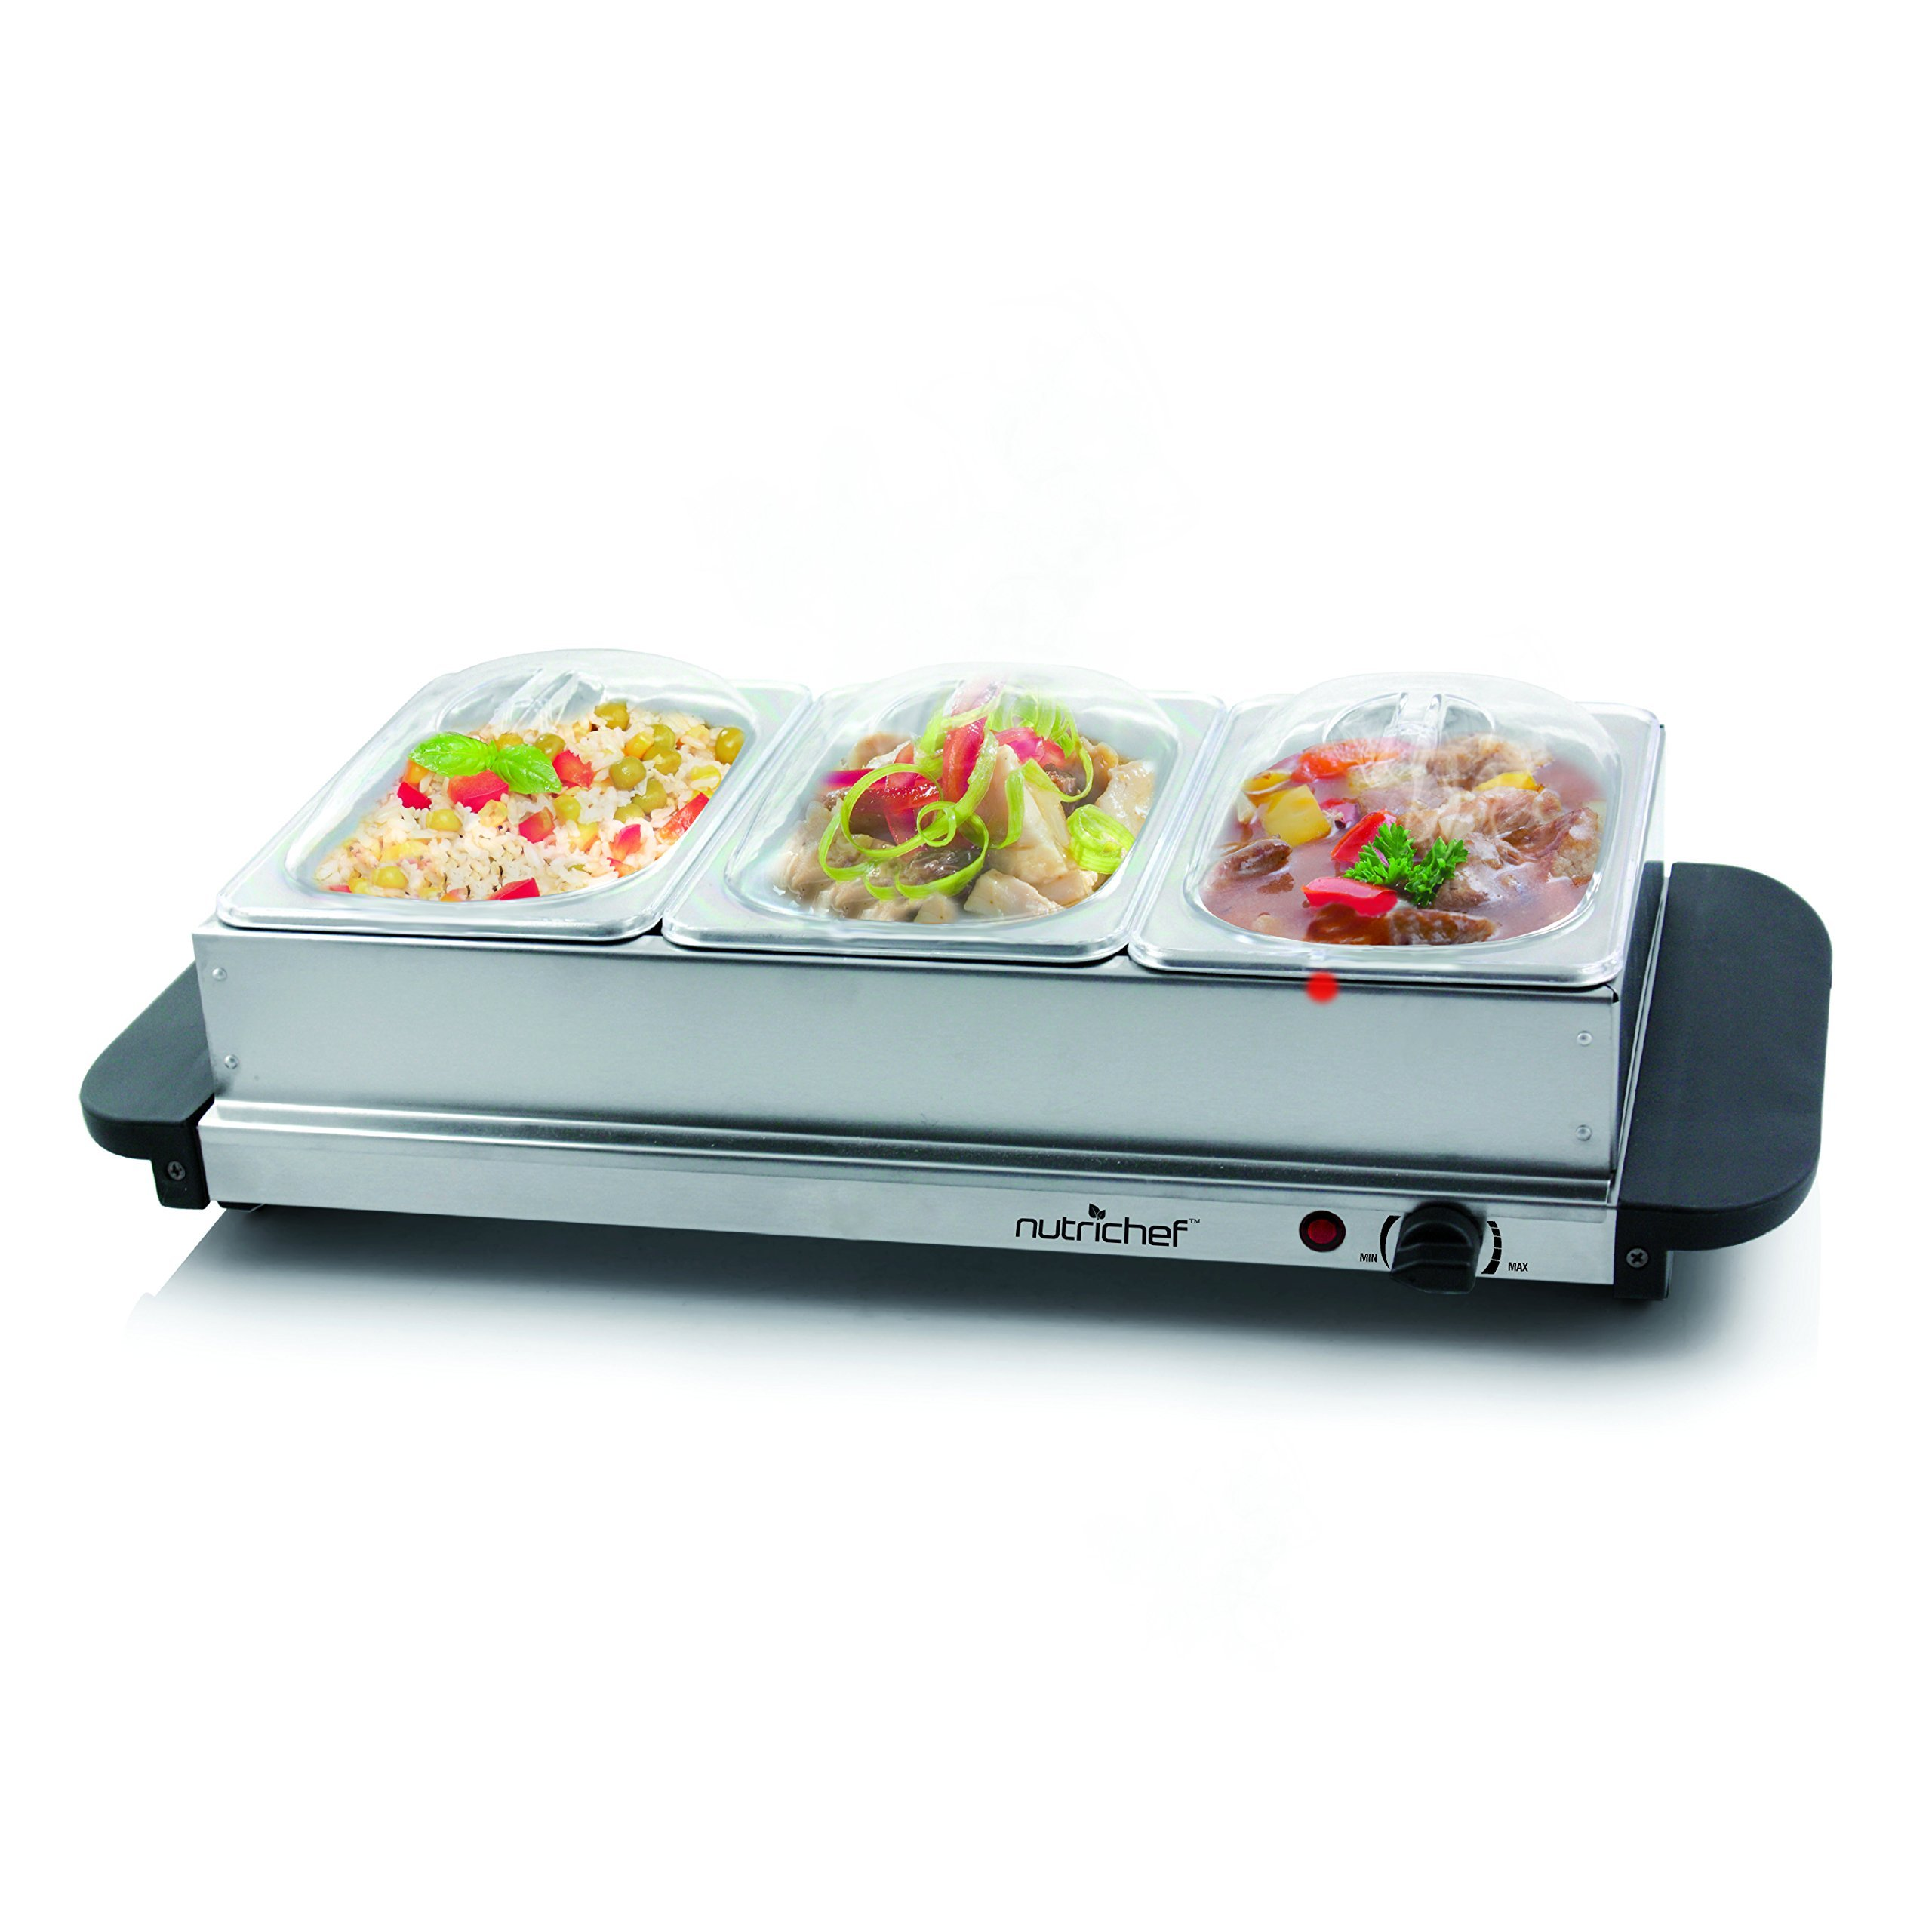 NutriChef 3 Buffet Warmer Server - Professional Hot Plate Food Warmer Station , Easy Clean Stainless Steel , Portable & Great for Parties Holiday & Events - Max Temp 175F (Renewed) by NutriChef (Image #1)